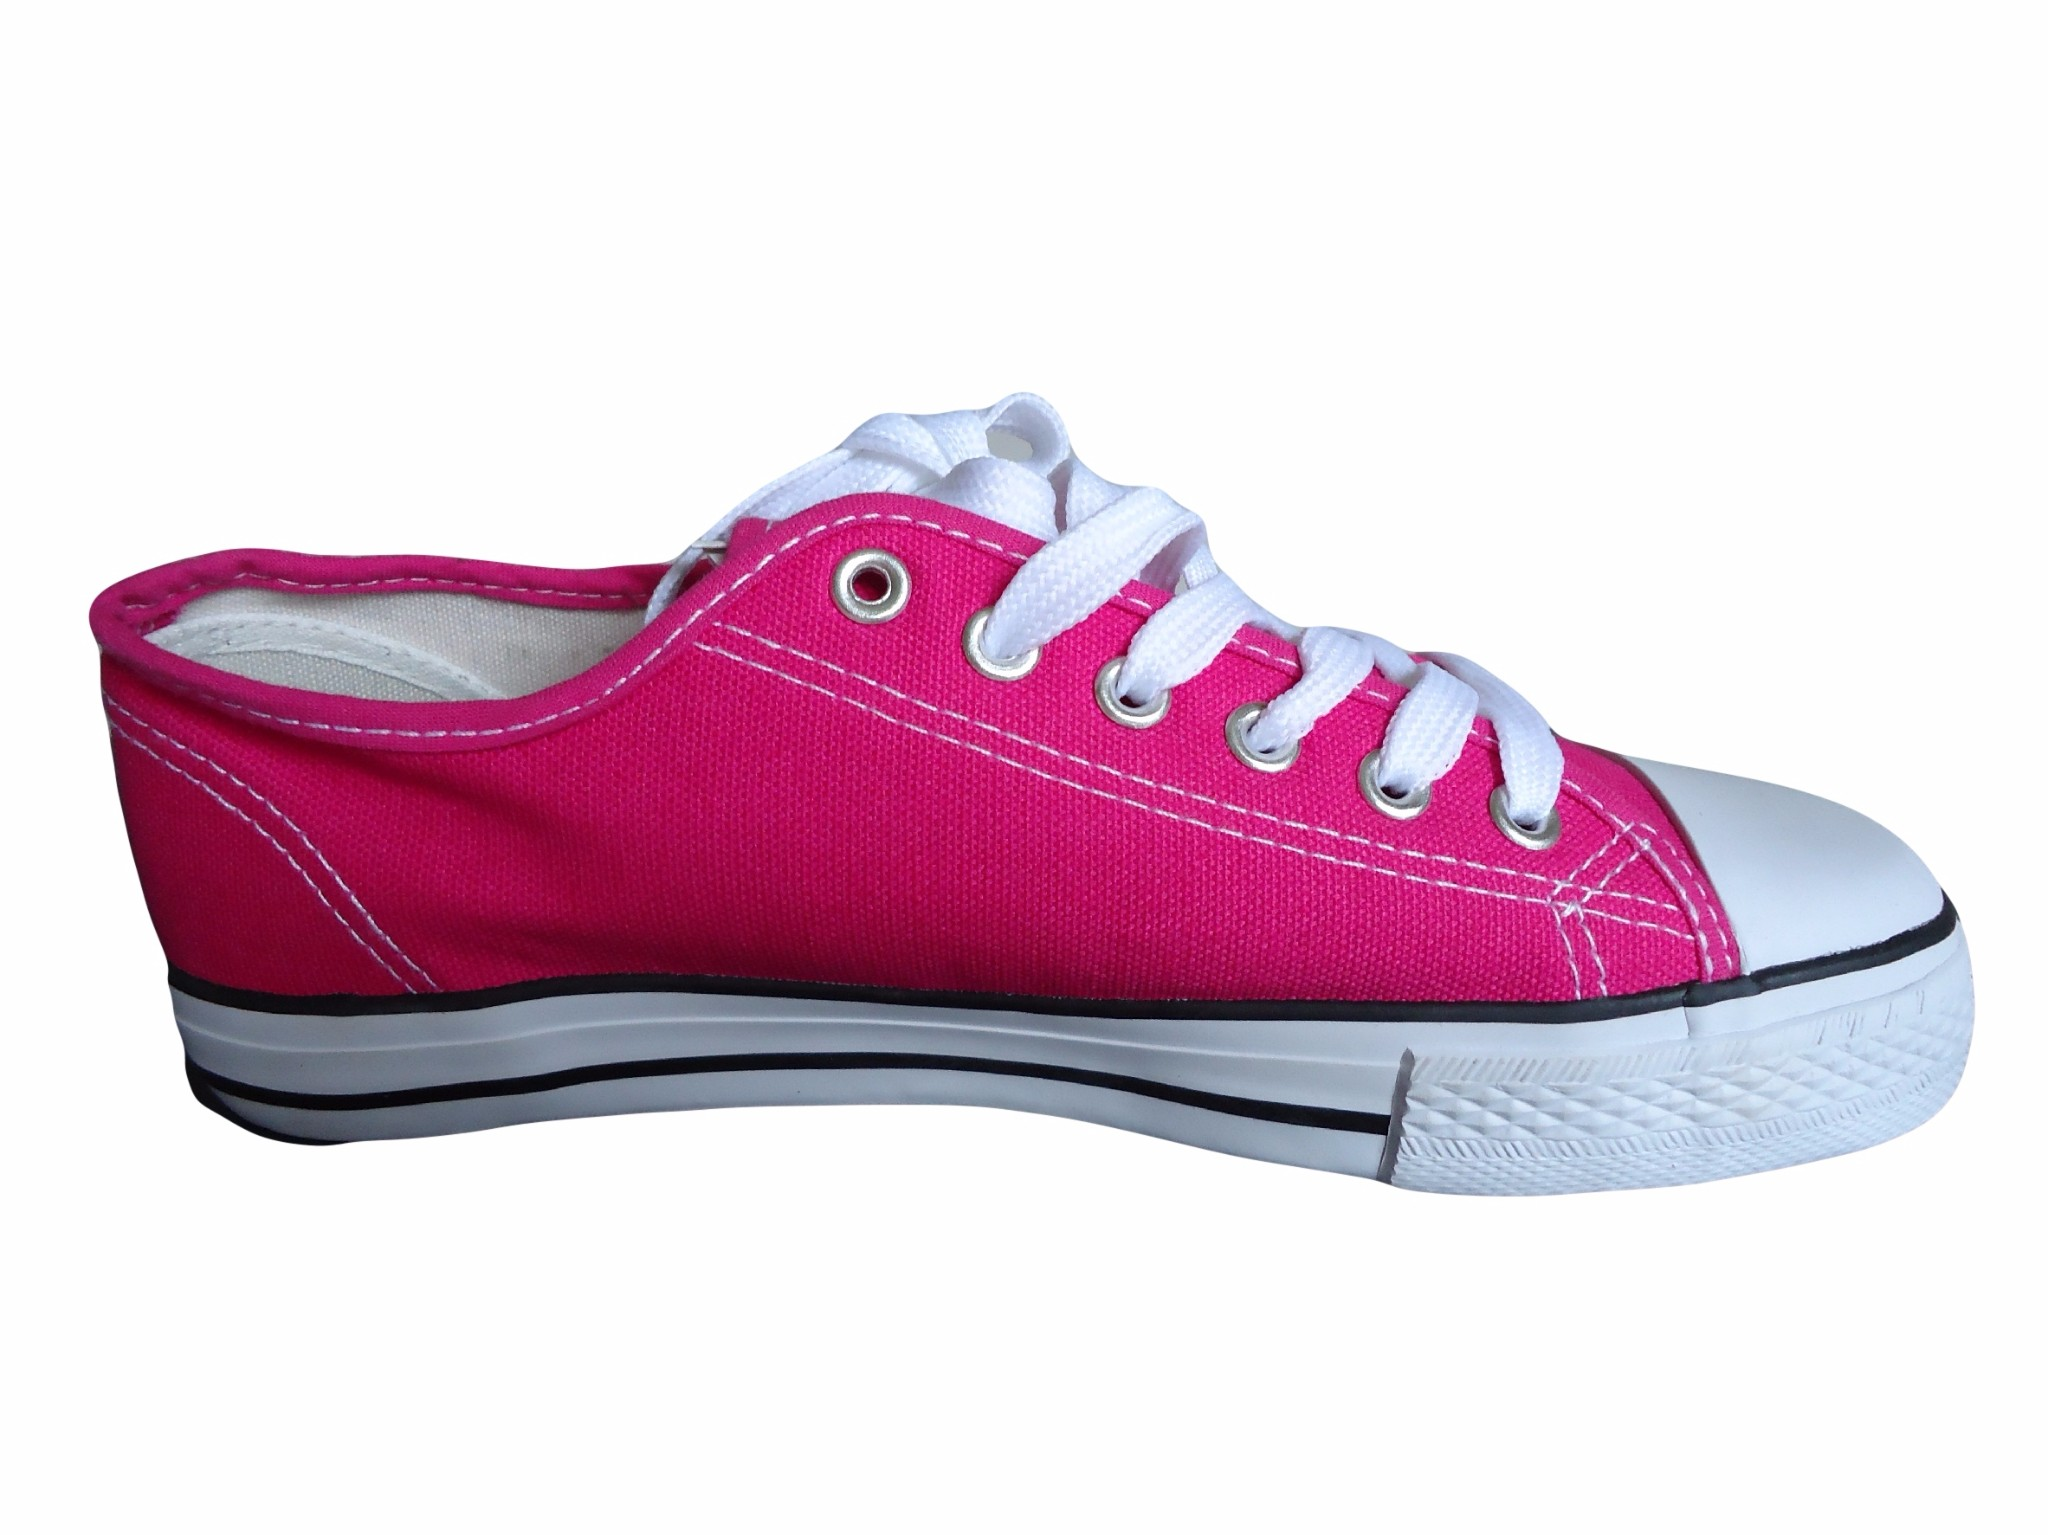 pink canvas trainers baseball style shoes plimsolls